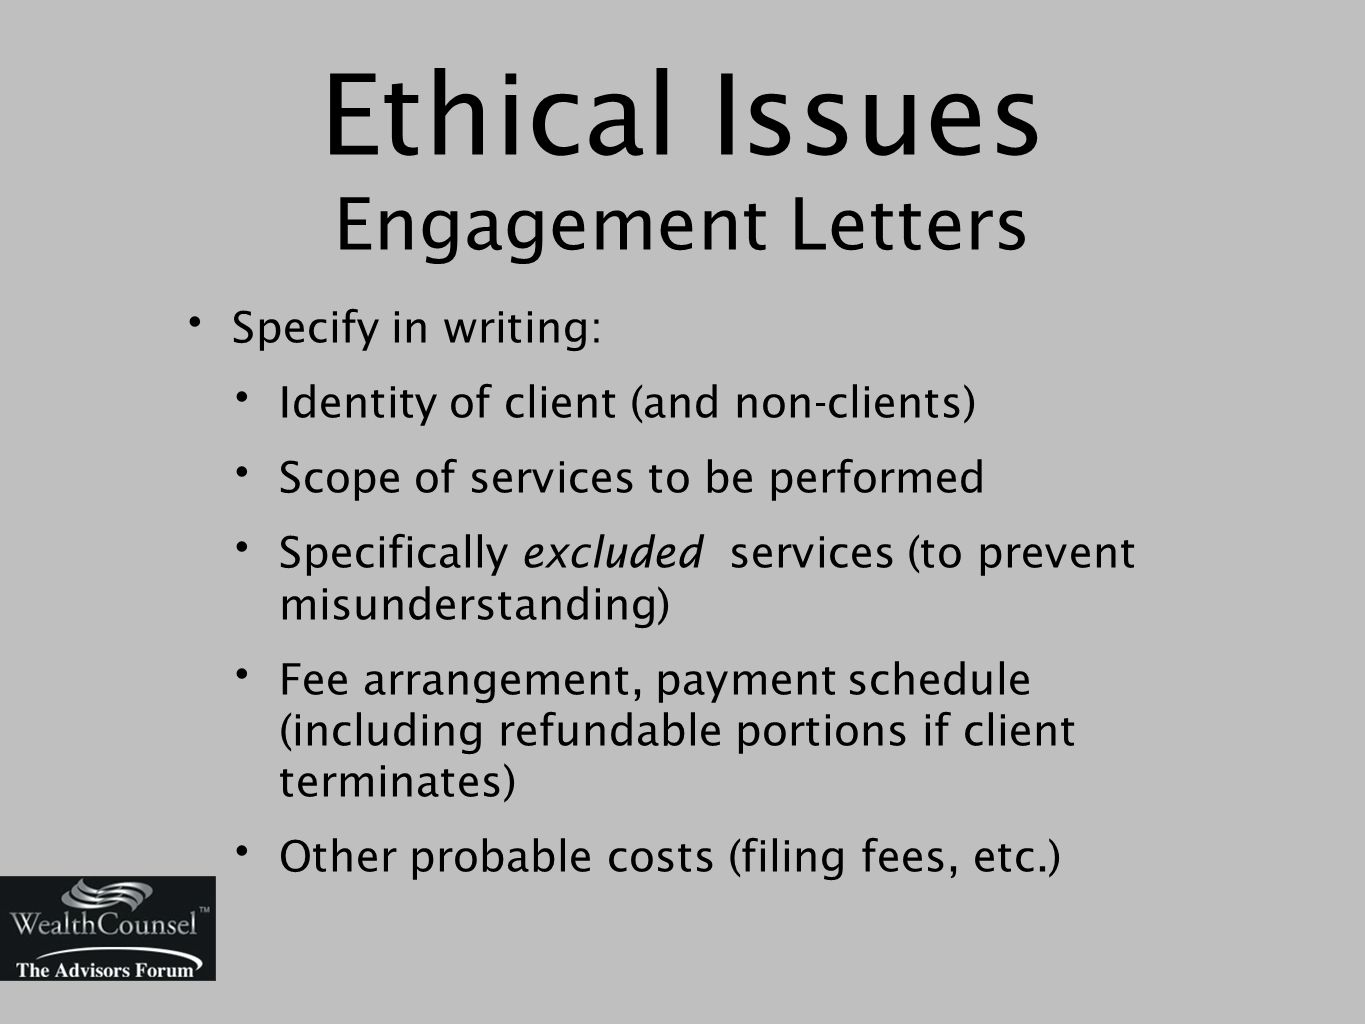 Ethical Issues Engagement Letters Specify in writing: Identity of client (and non-clients) Scope of services to be performed Specifically excluded services (to prevent misunderstanding) Fee arrangement, payment schedule (including refundable portions if client terminates) Other probable costs (filing fees, etc.)